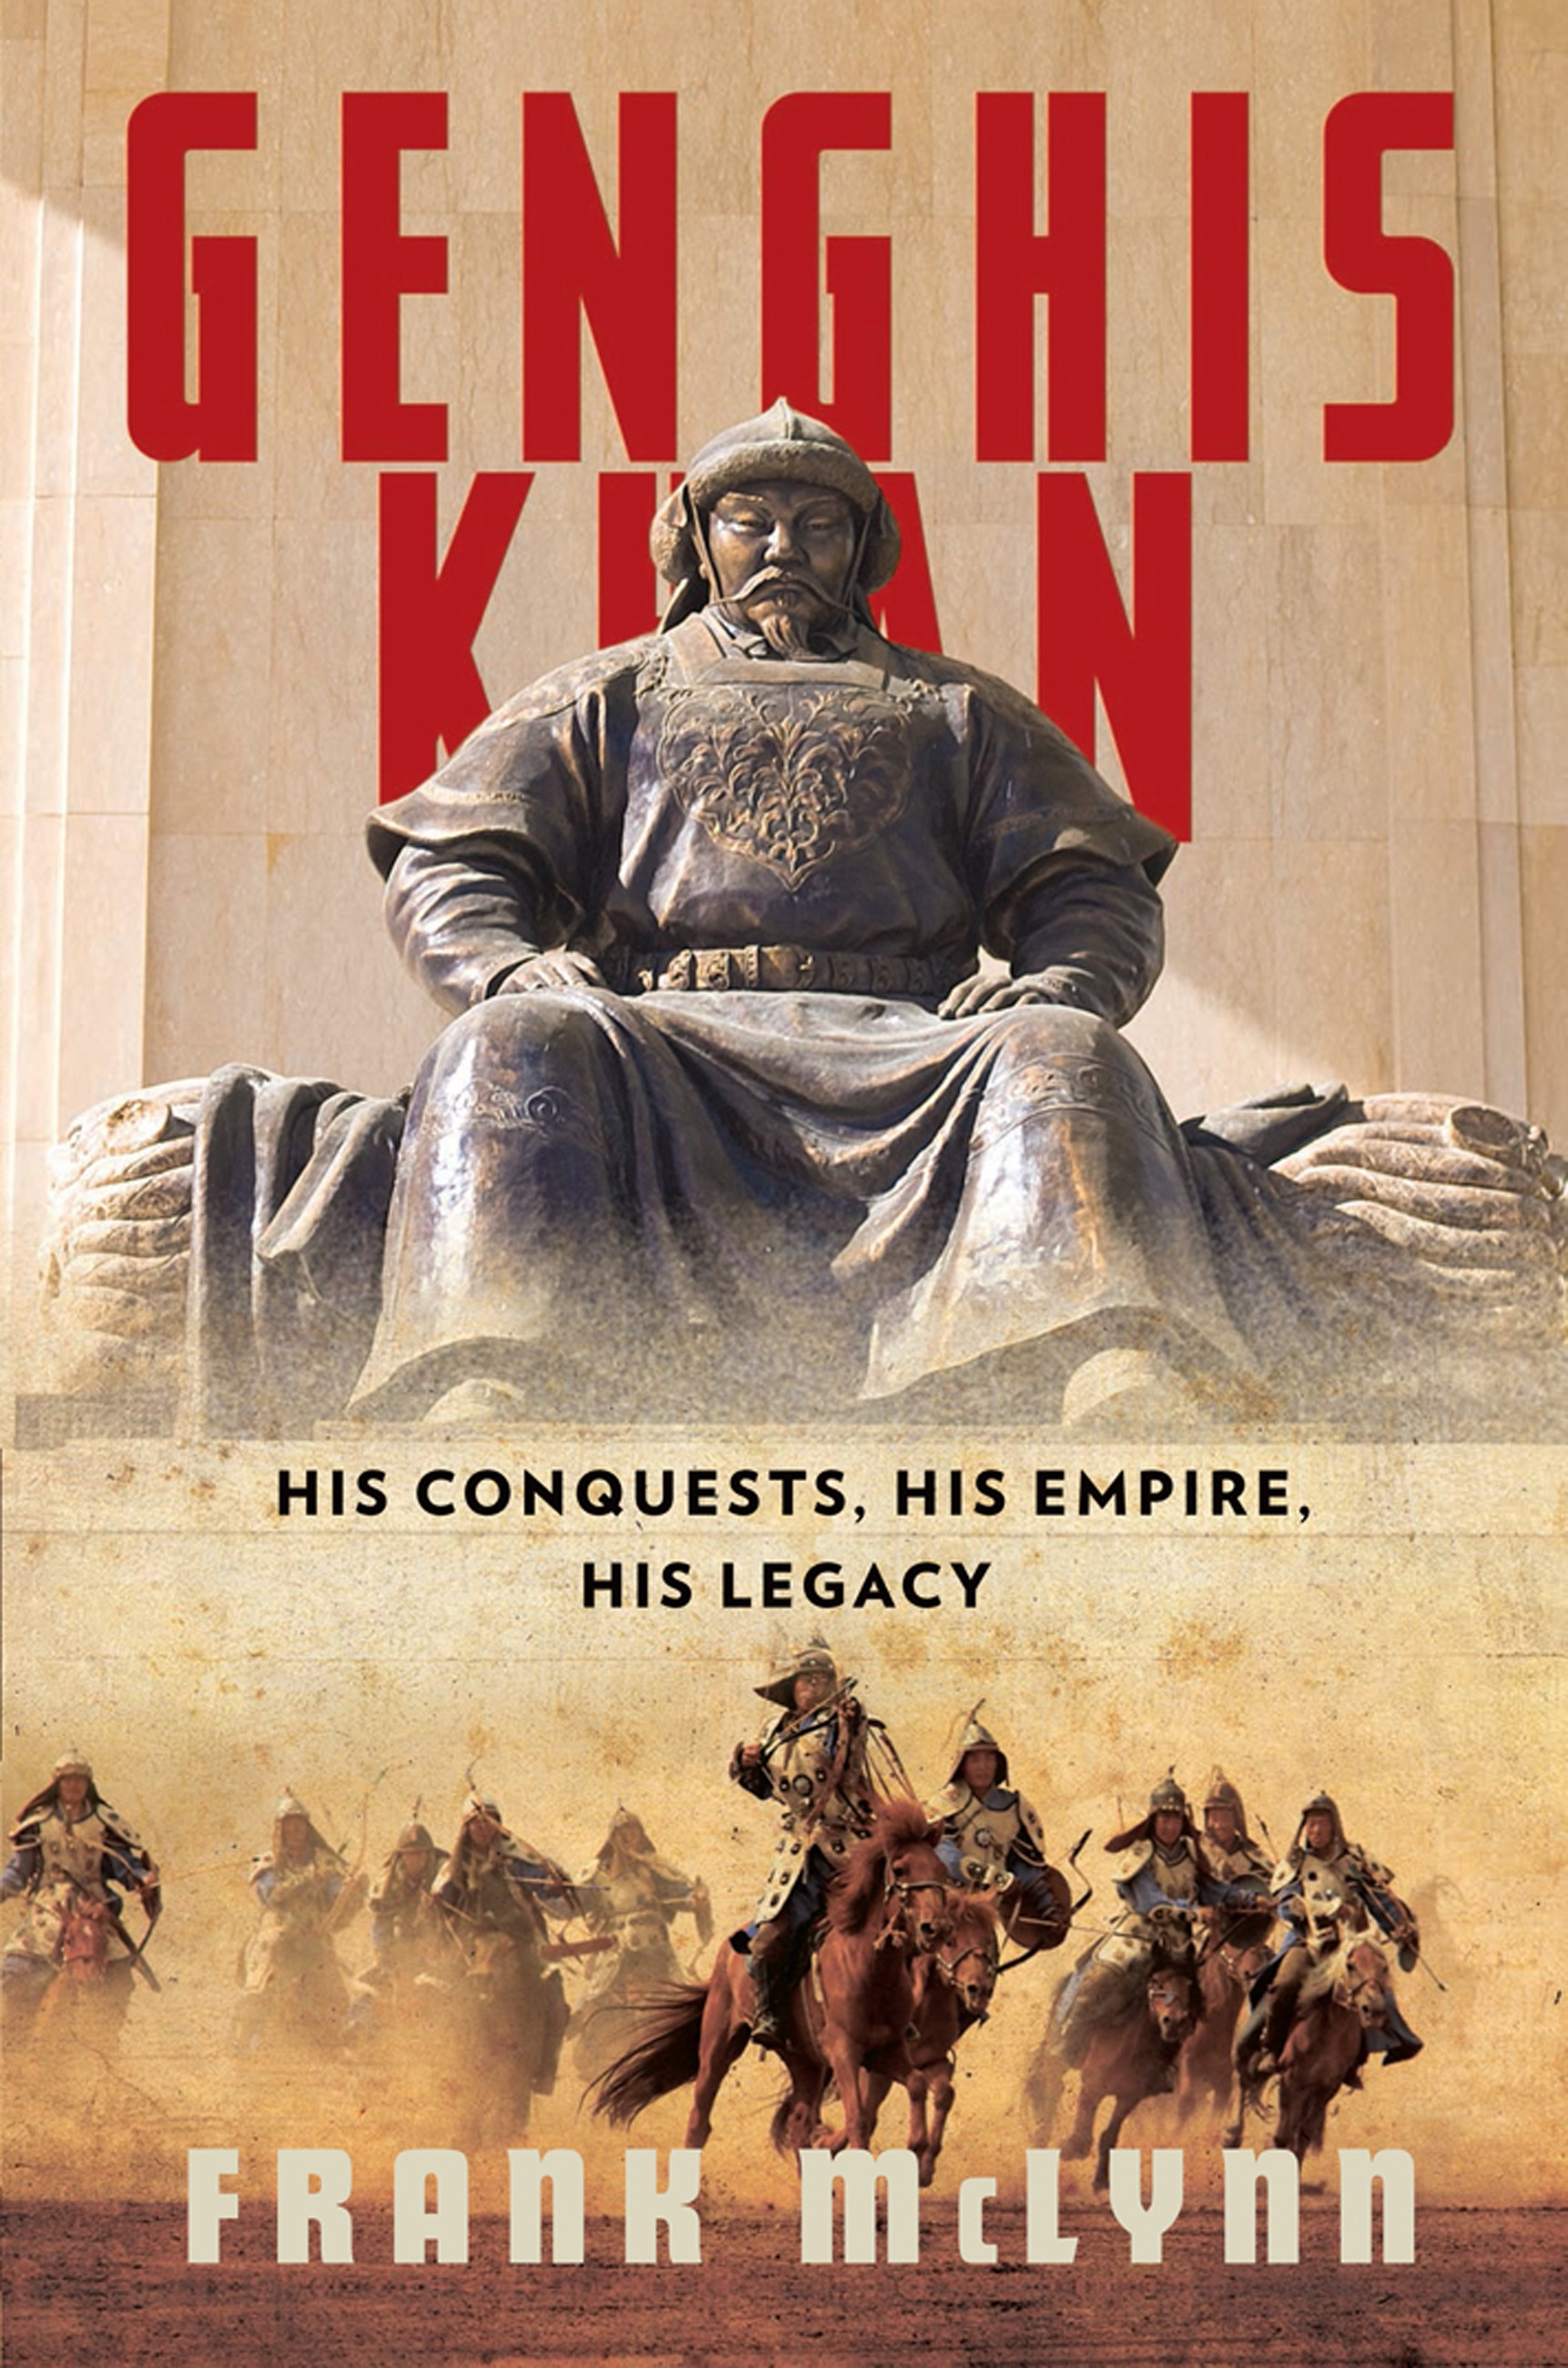 Book Cover of Genghis Khan